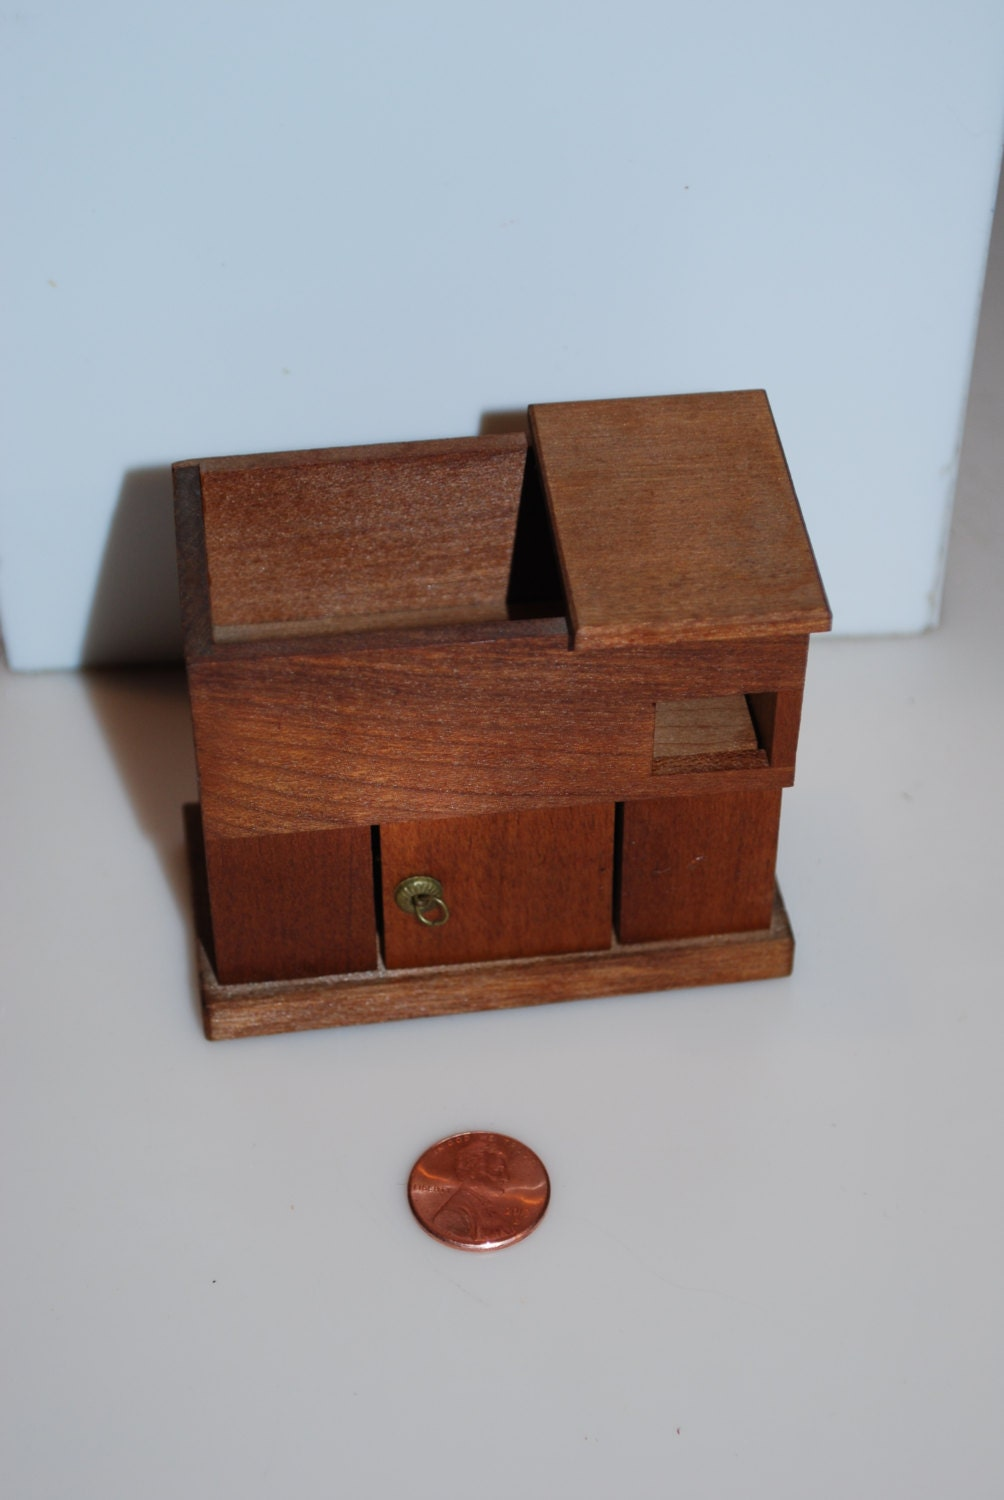 F O Merz Dry Sink Wood Wooden Vintage Dollhouse Miniature Furniture 3 Haute Juice: dollhouse wooden furniture